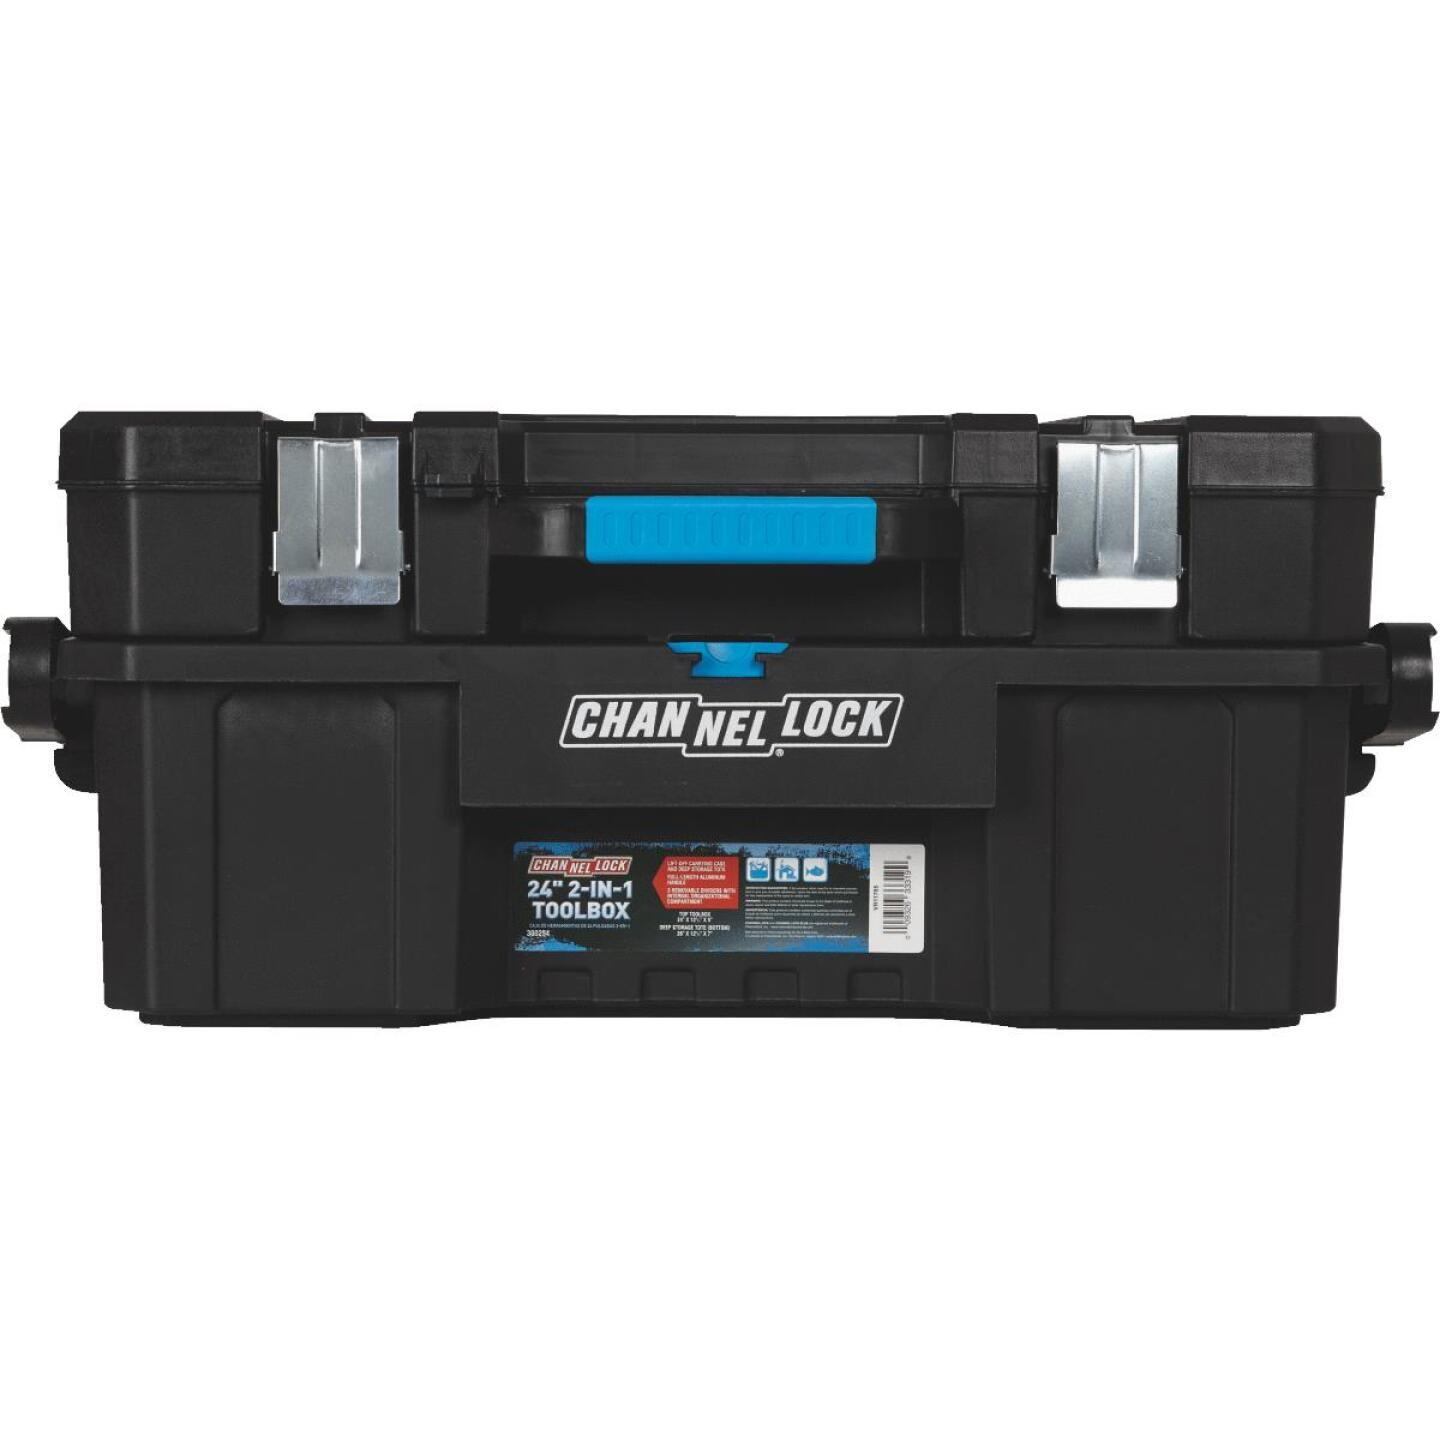 Channellock 24 In. 2-in-1 Toolbox Image 4